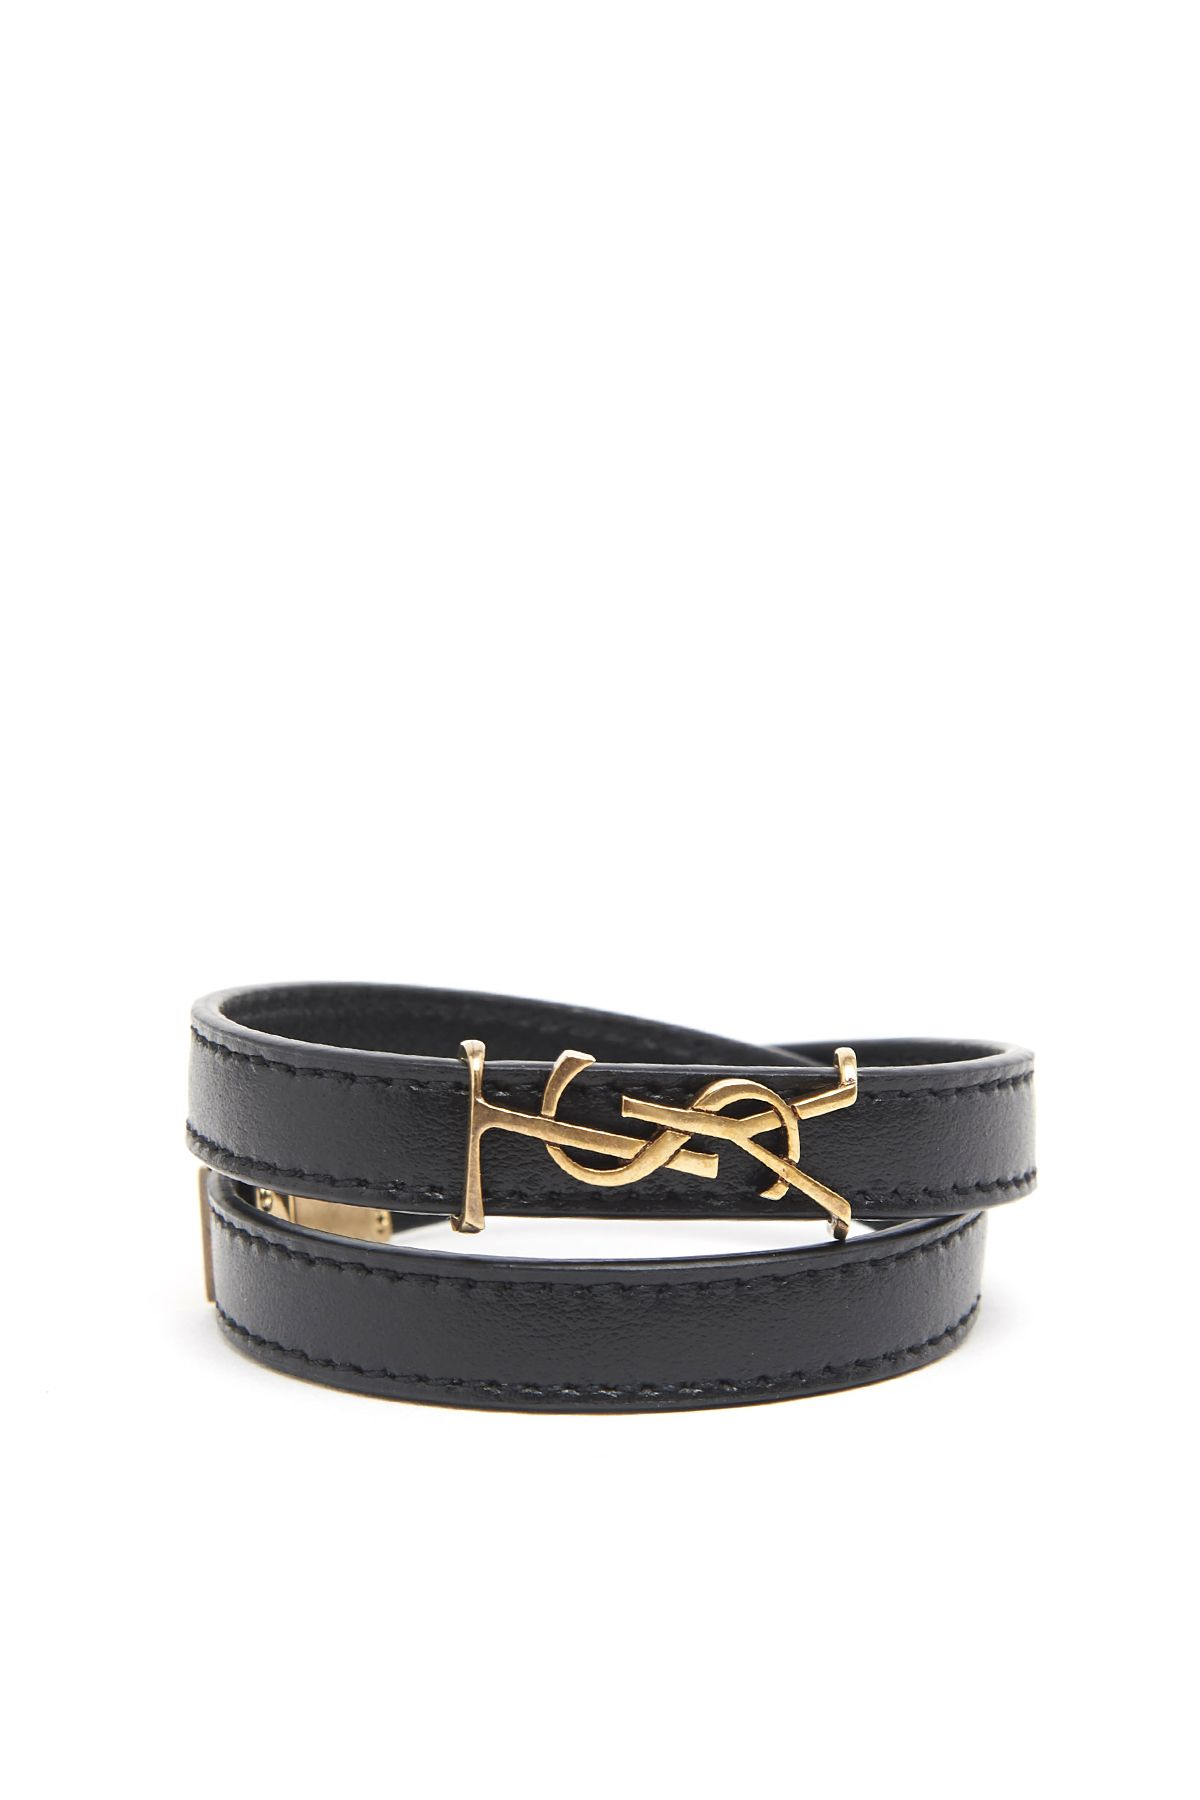 a8215572bd2 SAINT LAURENT YSL DOUBLE WRAP BRACELET IN BLACK LEATHER AND LIGHT BRONZE-TONED  METAL